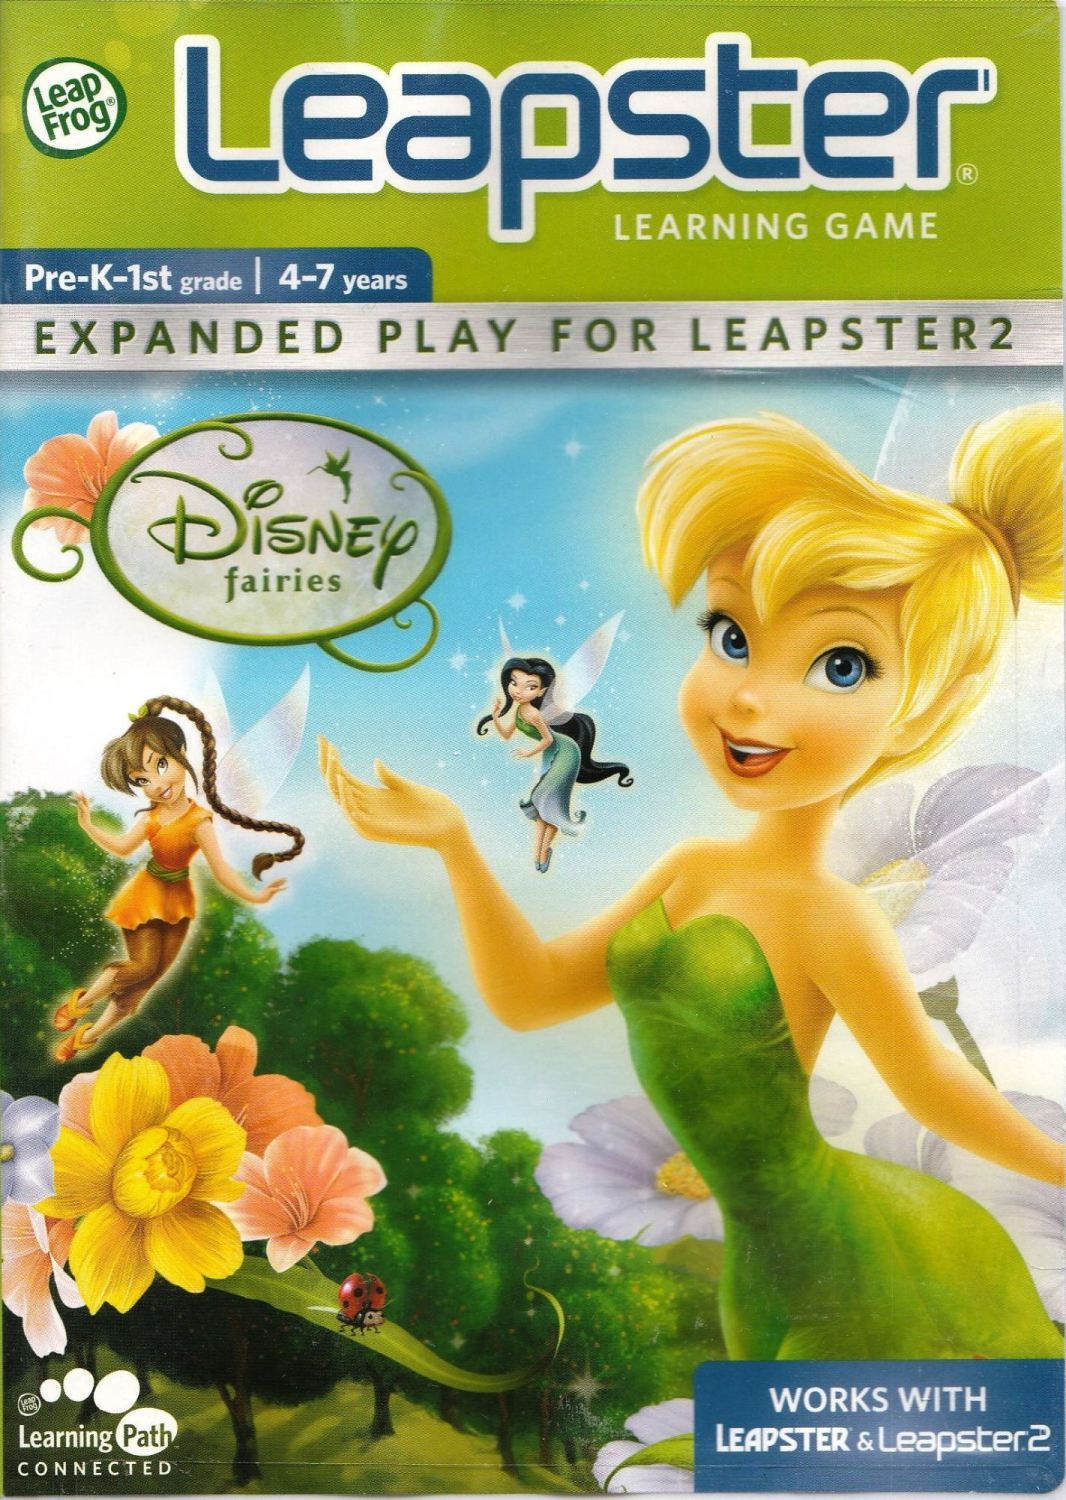 Disney Fairies - Leap Frog Leapster - 4-7 Years - NEW